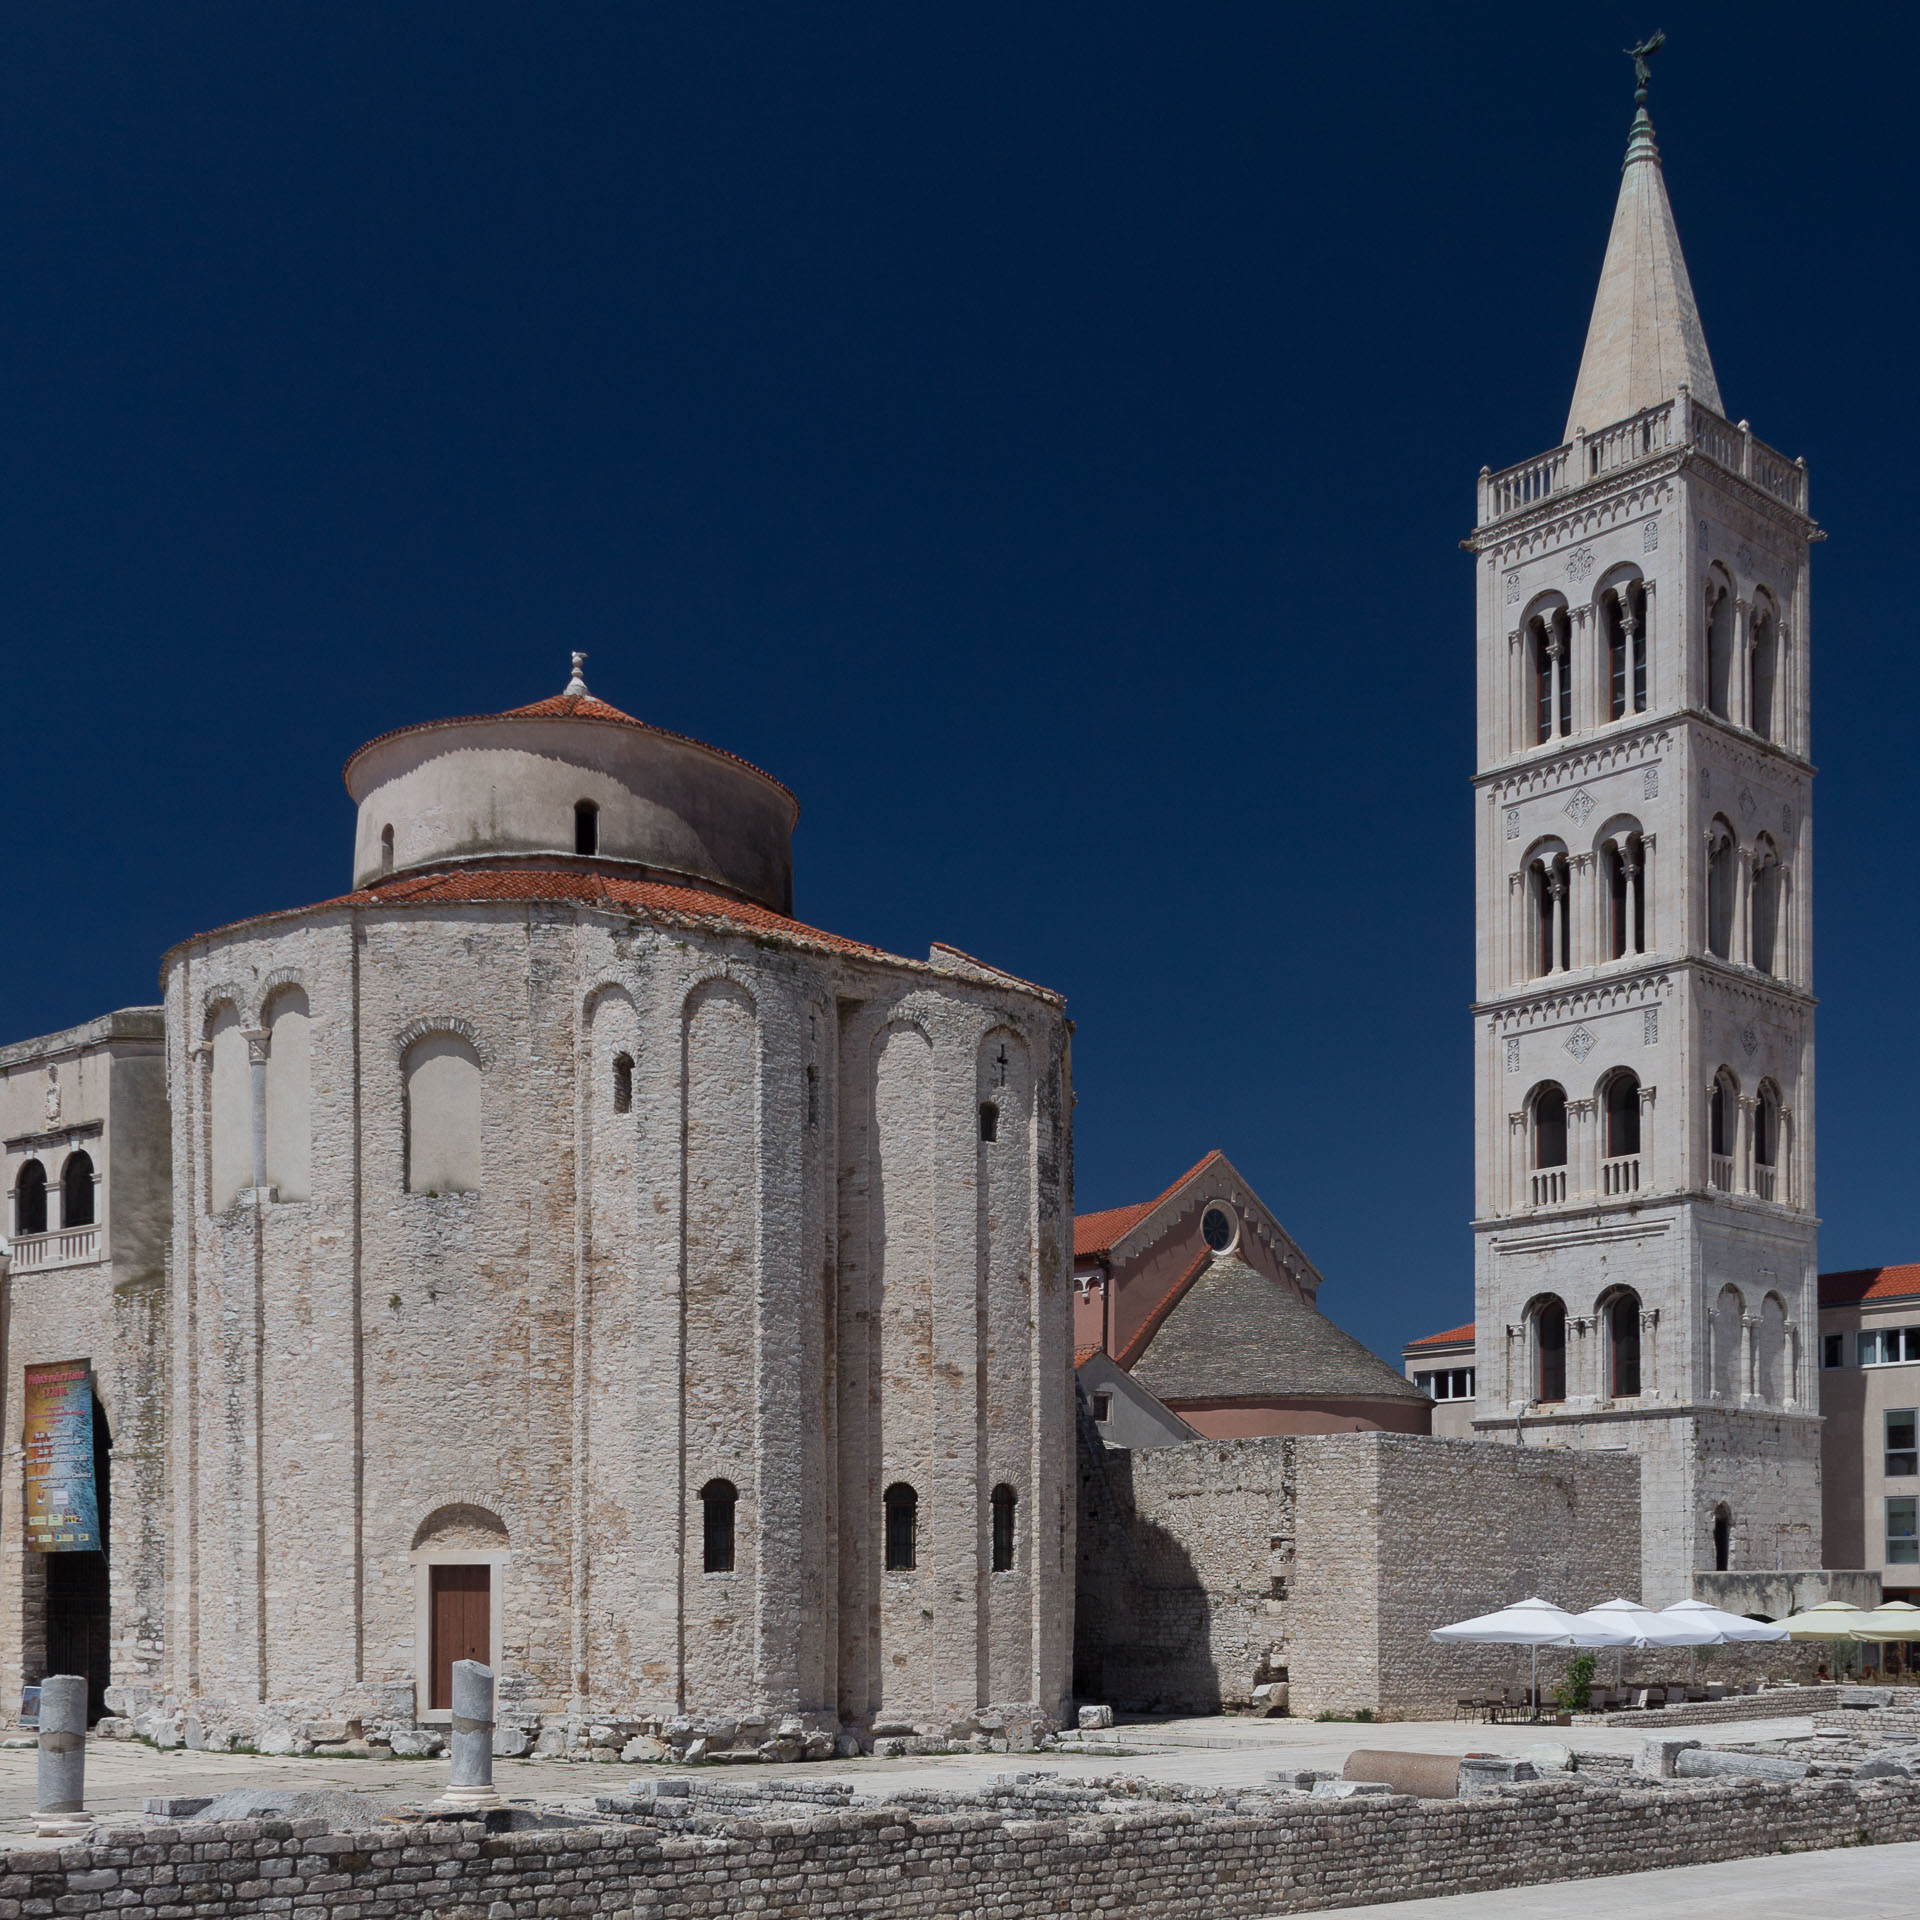 St. Donatus in Zadar